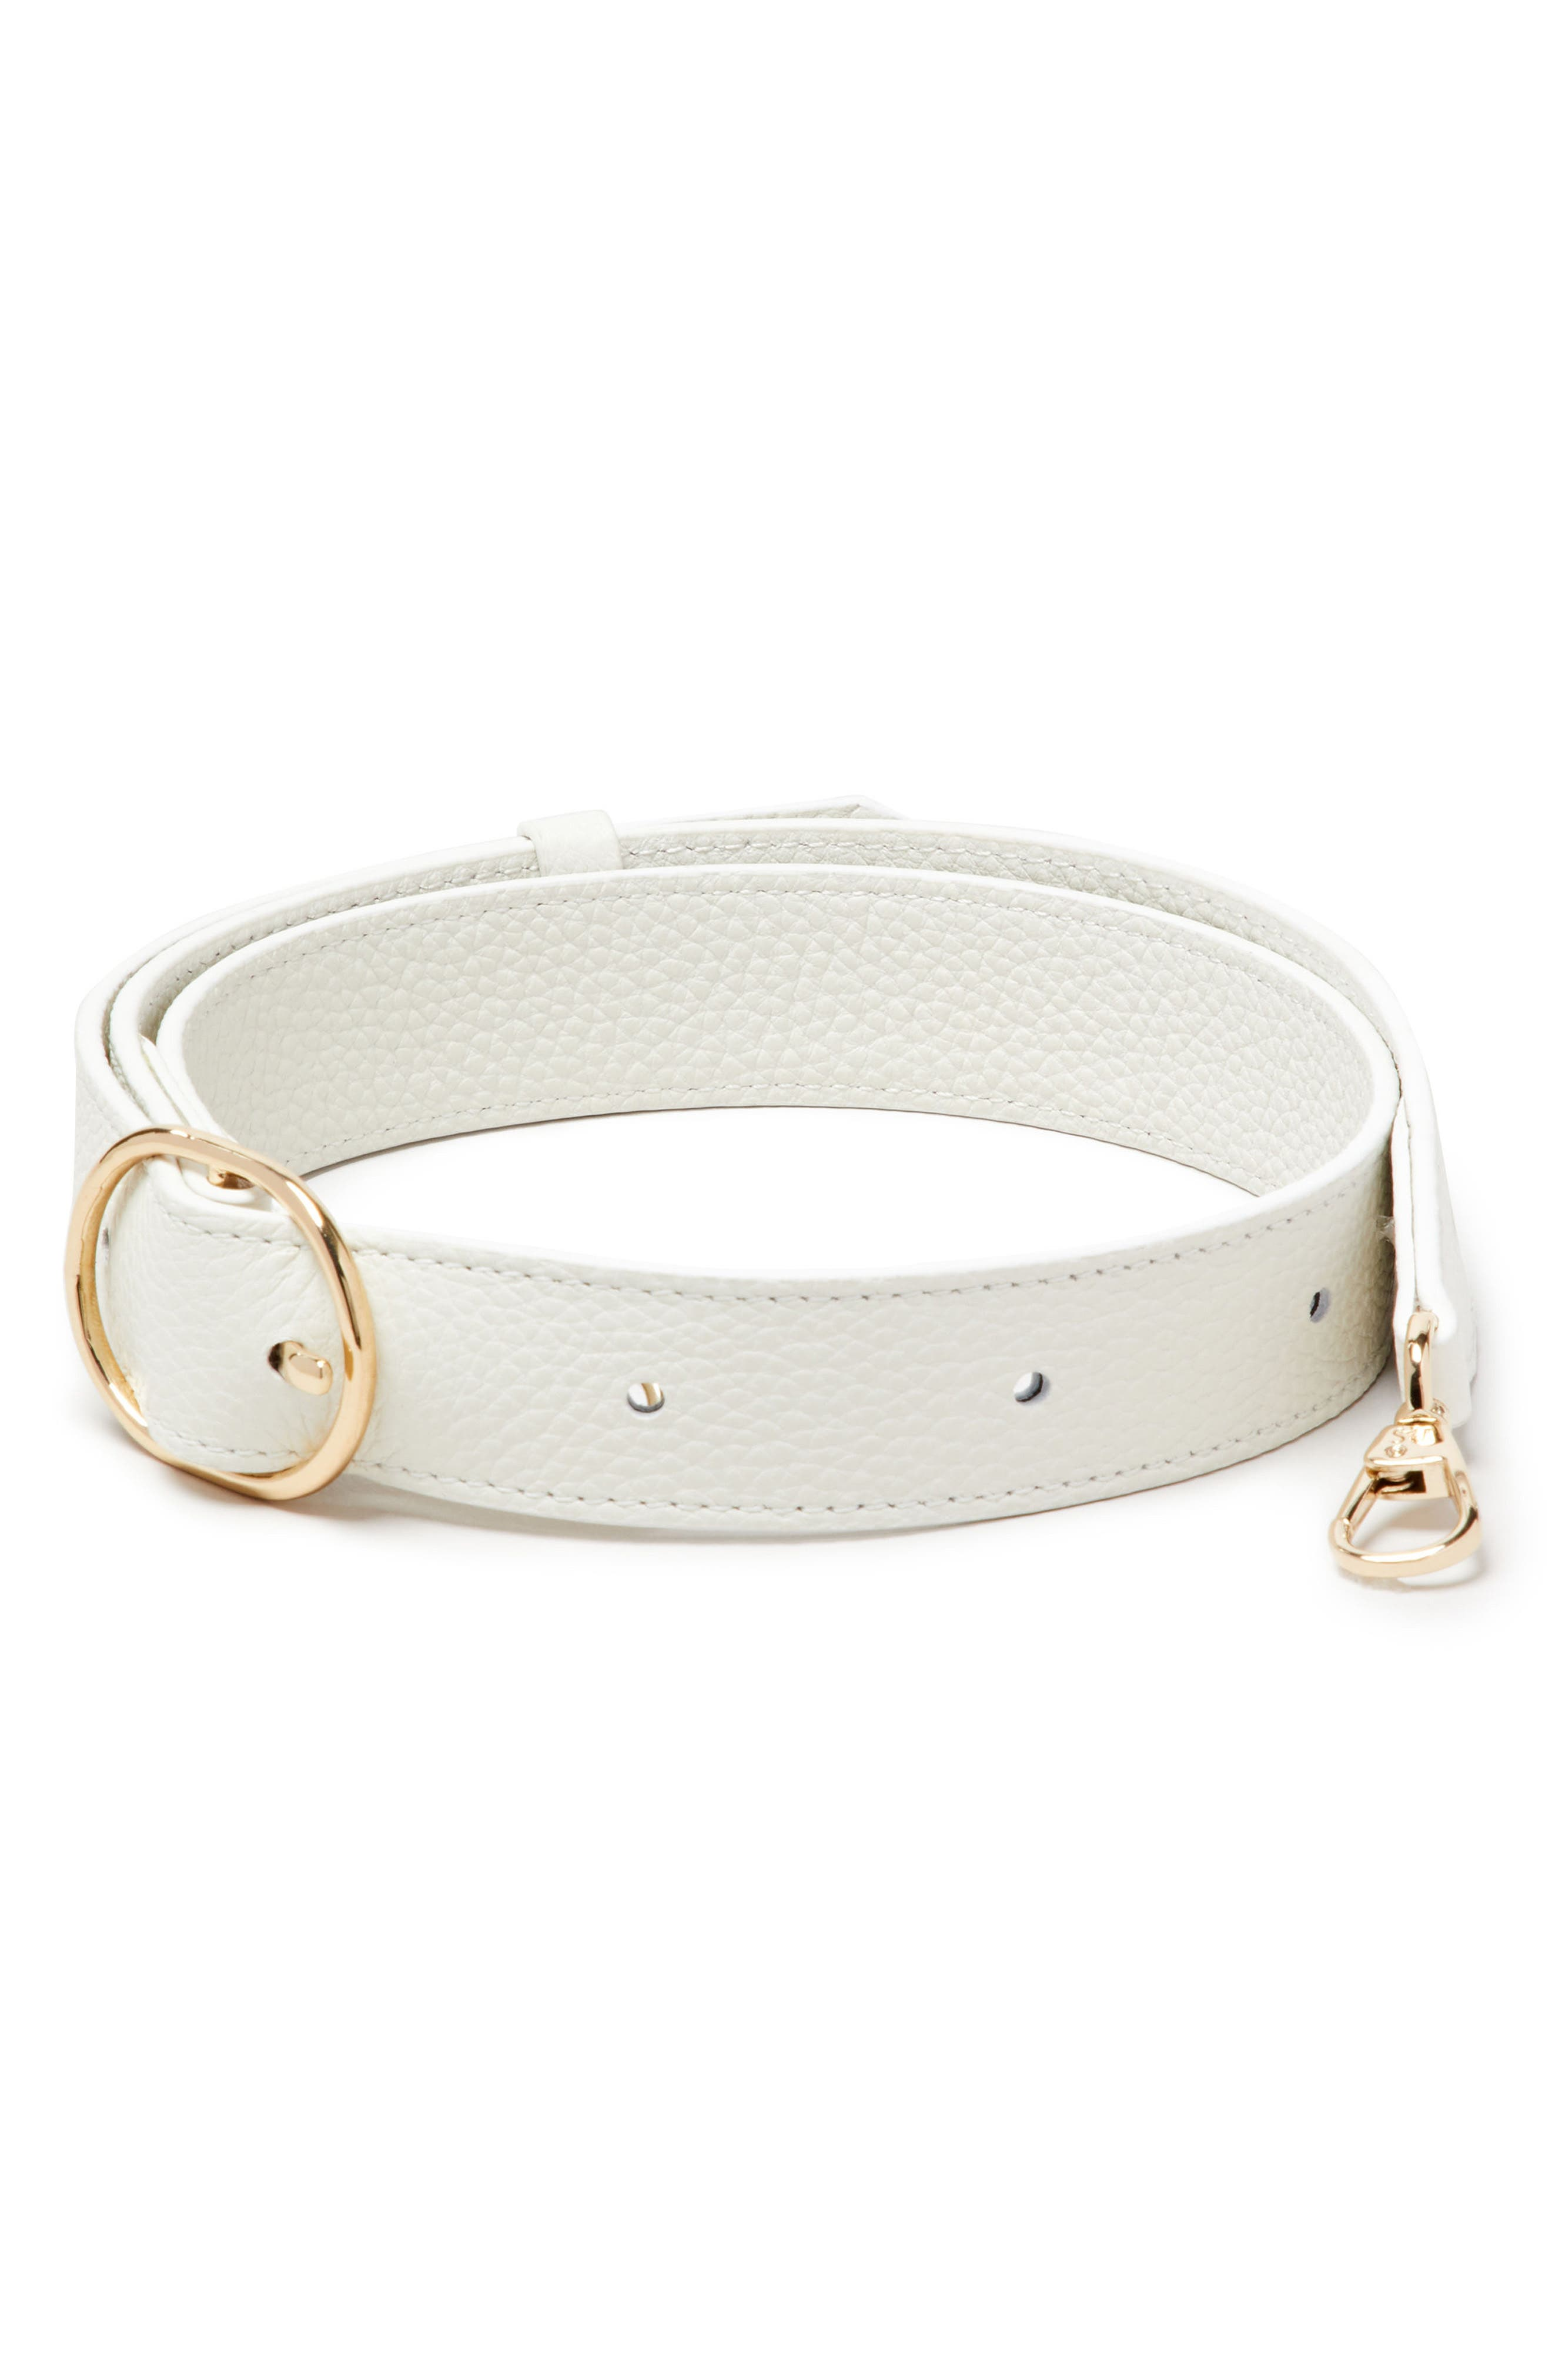 Leather Wide Fanny Strap,                             Main thumbnail 1, color,                             Lily